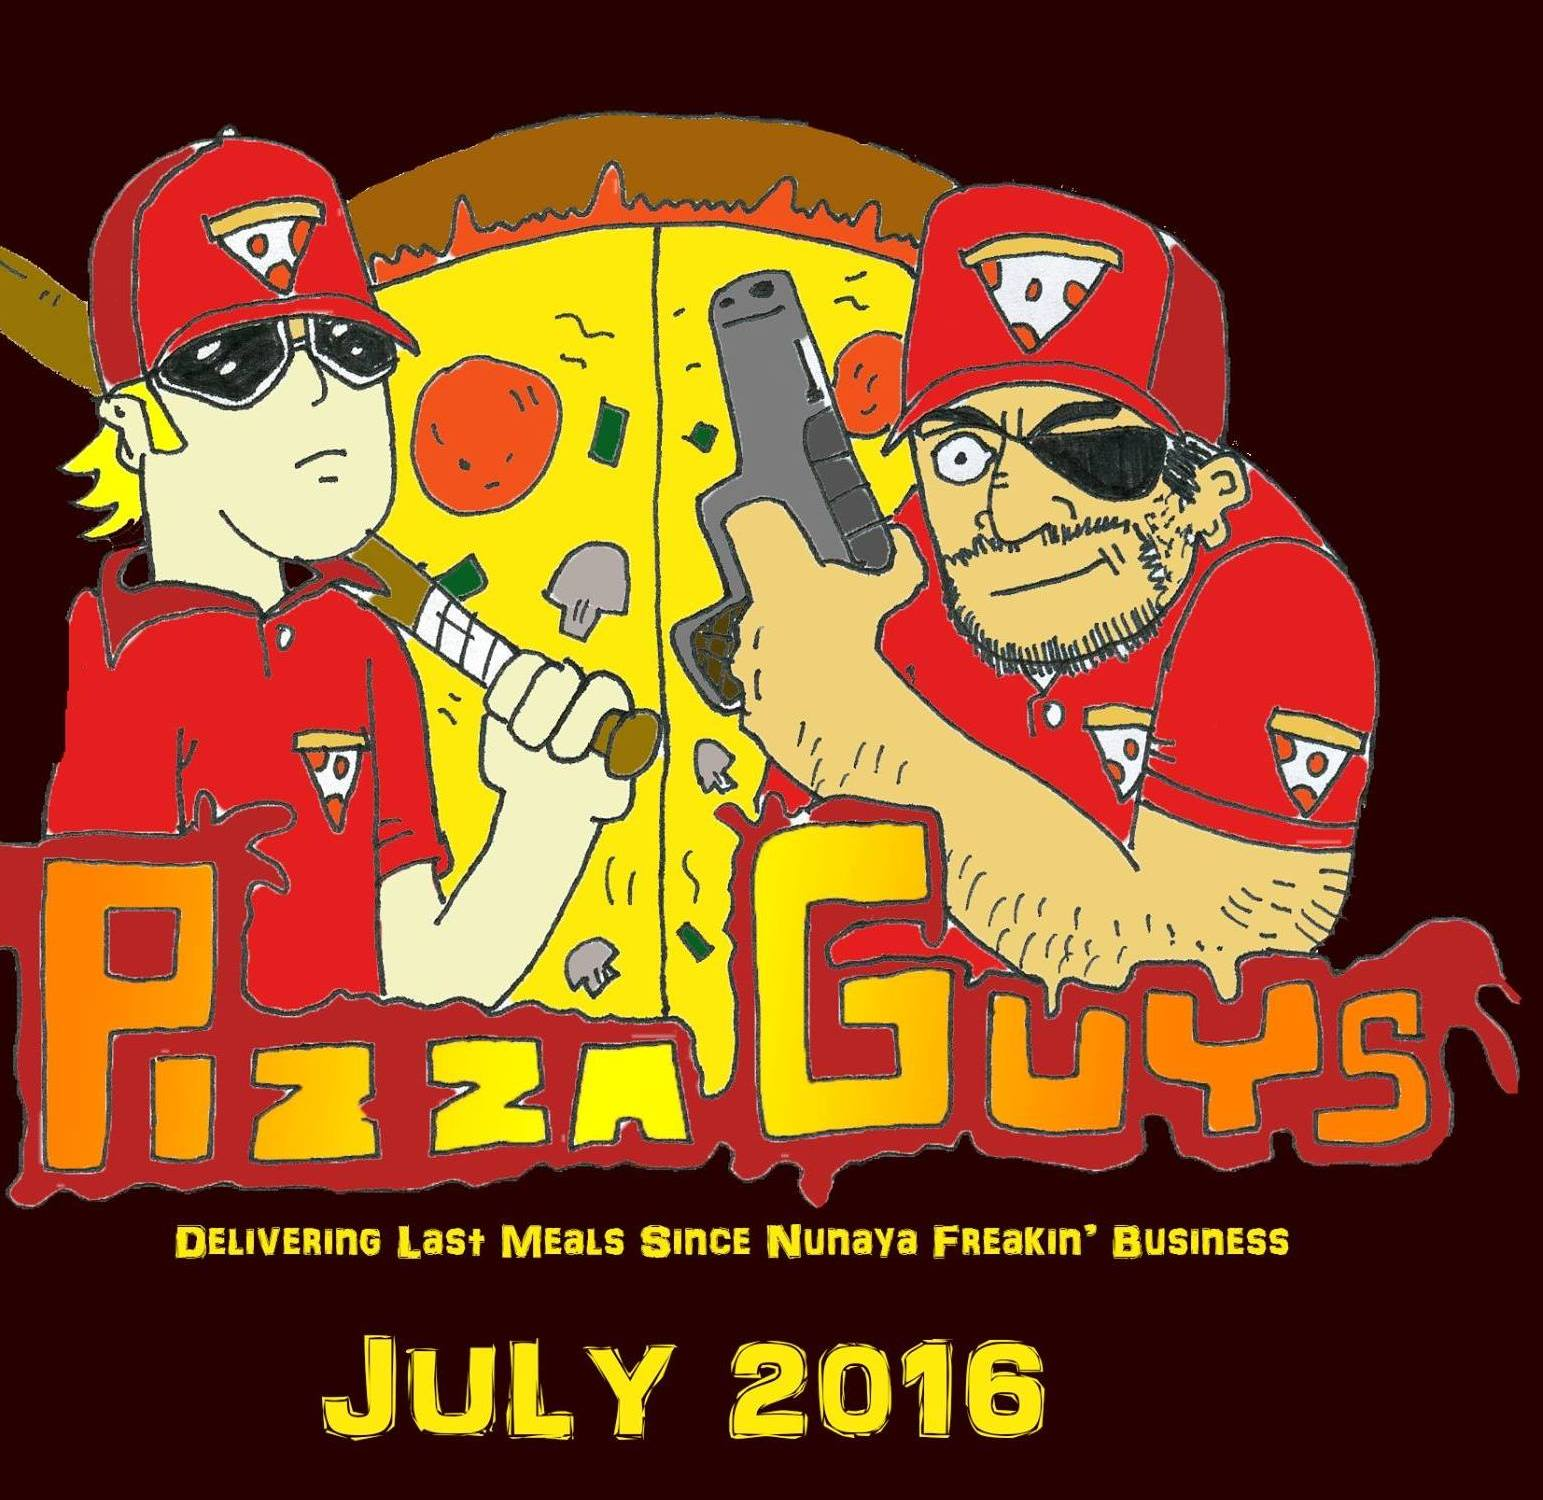 assassins, pizza guys, funny stories, short story, confidence, bath house, being brave